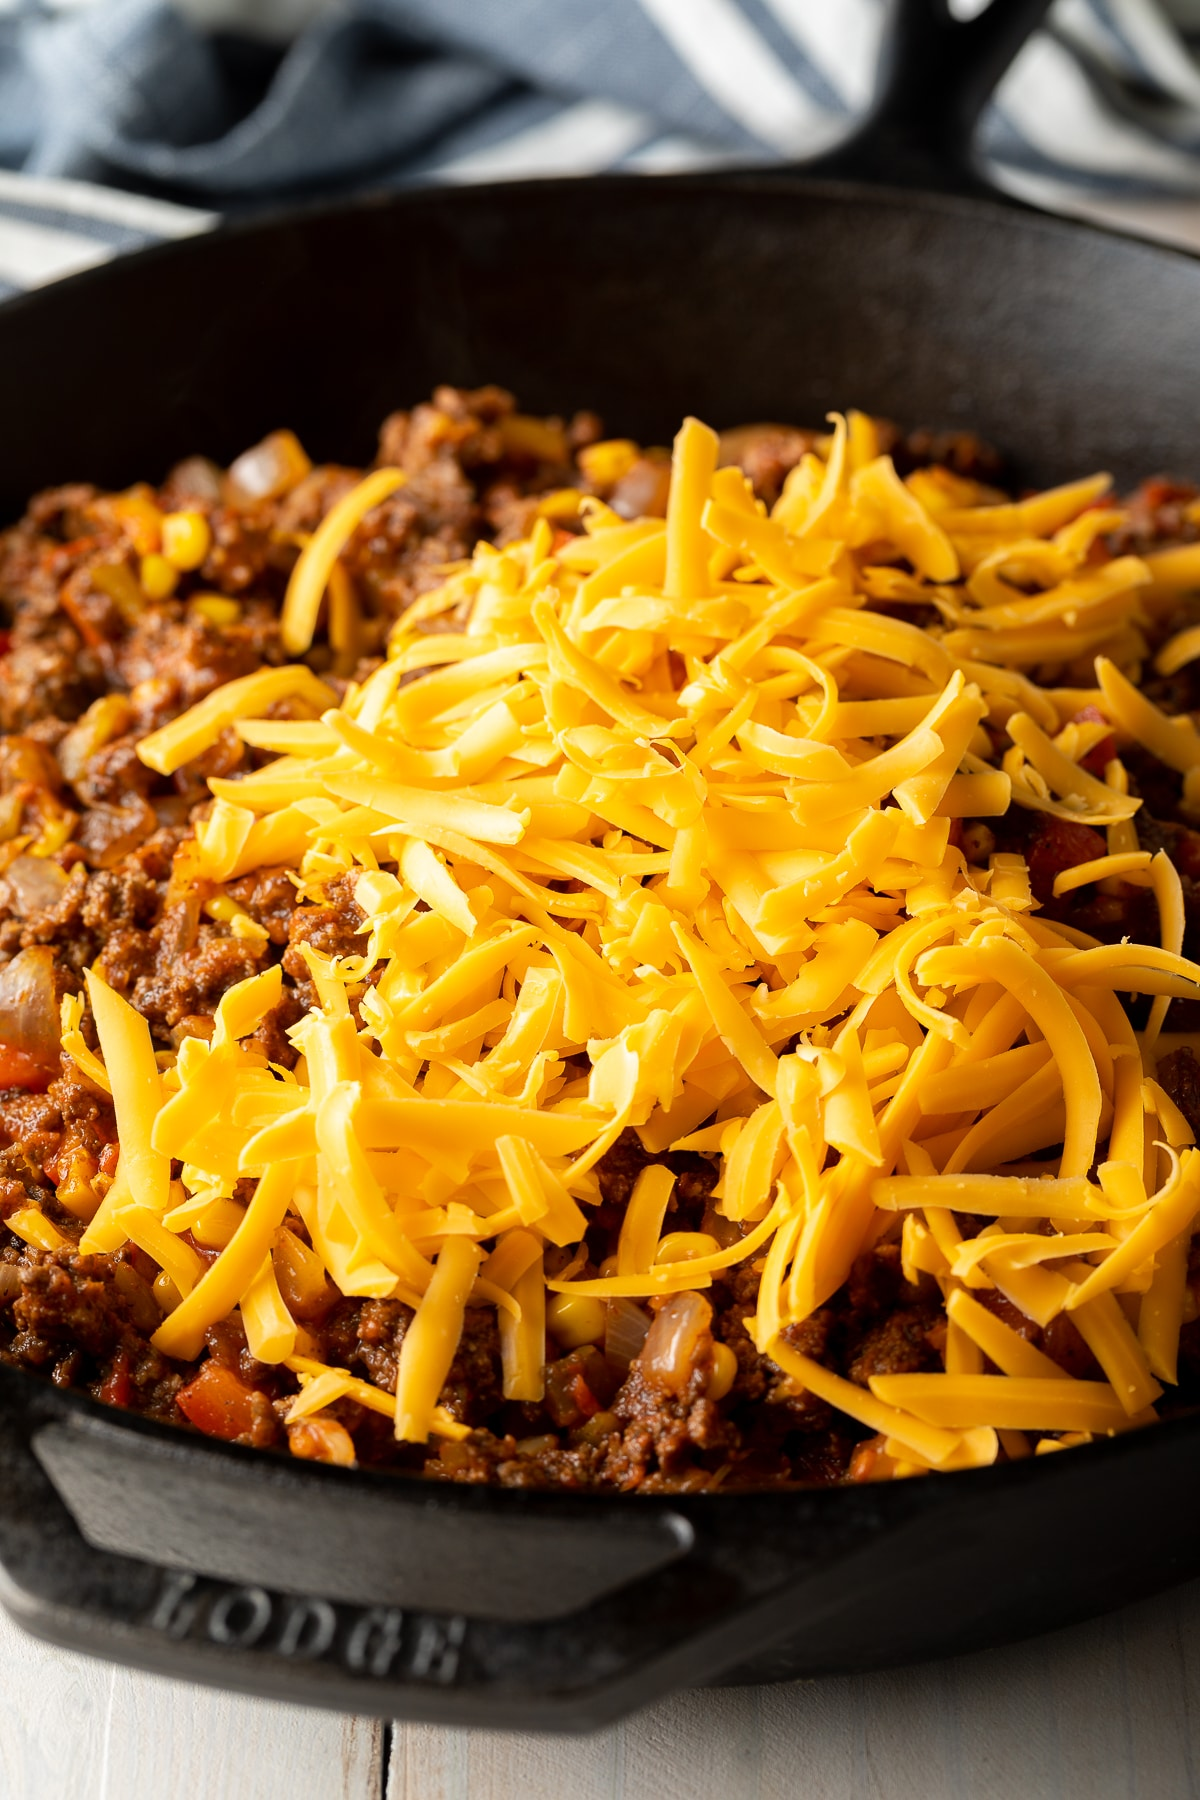 Gluten Free Tamale Pie Recipe - Easy to Make and Gluten Free! #tamales #tamalepie #glutenfreedinner #glutenfreerecipe #aspicyperspective